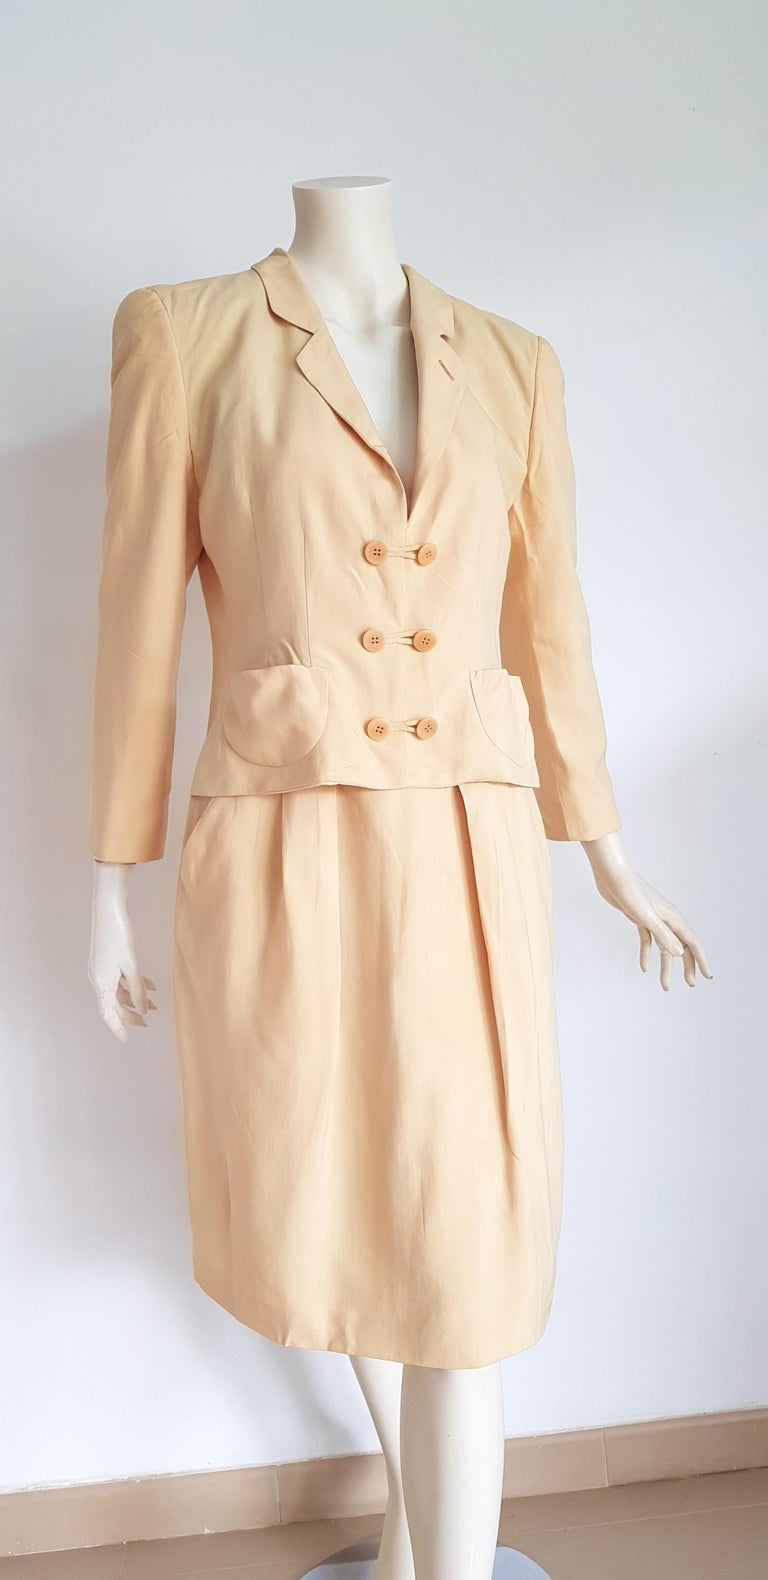 Giorgio ARMANI beige yellow tone jacket and skirt, silk, suit - Unworn, New  SIZE: equivalent to about Small / Medium, please review approx measurements as follows in cm.  JACKET: lenght 56, chest underarm to underarm 52, bust circumference 94,